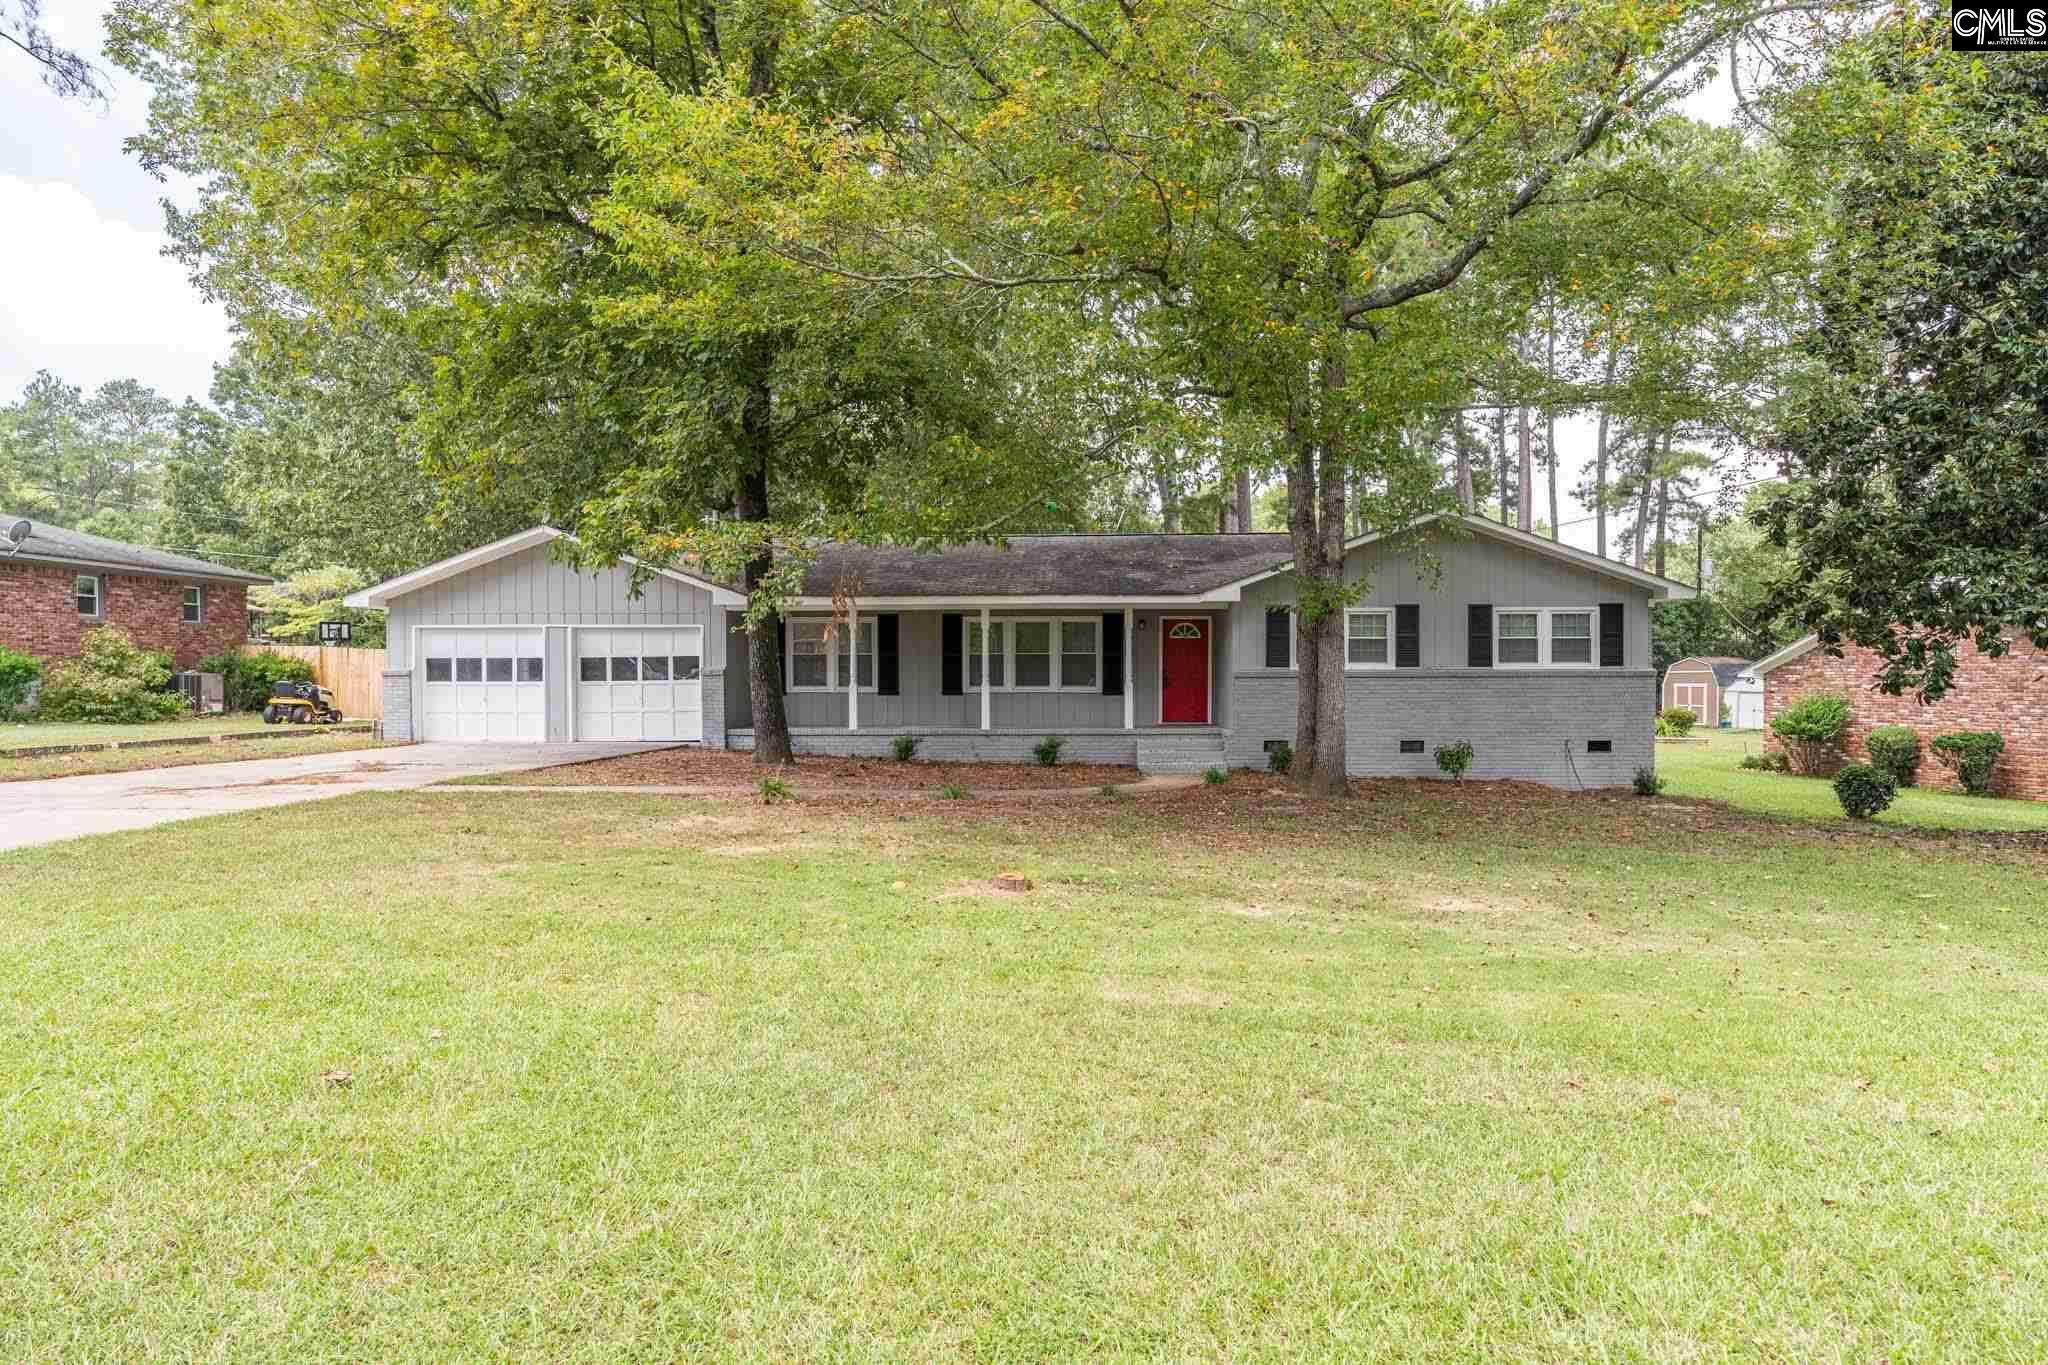 212 Lingstrom Columbia, SC 29212